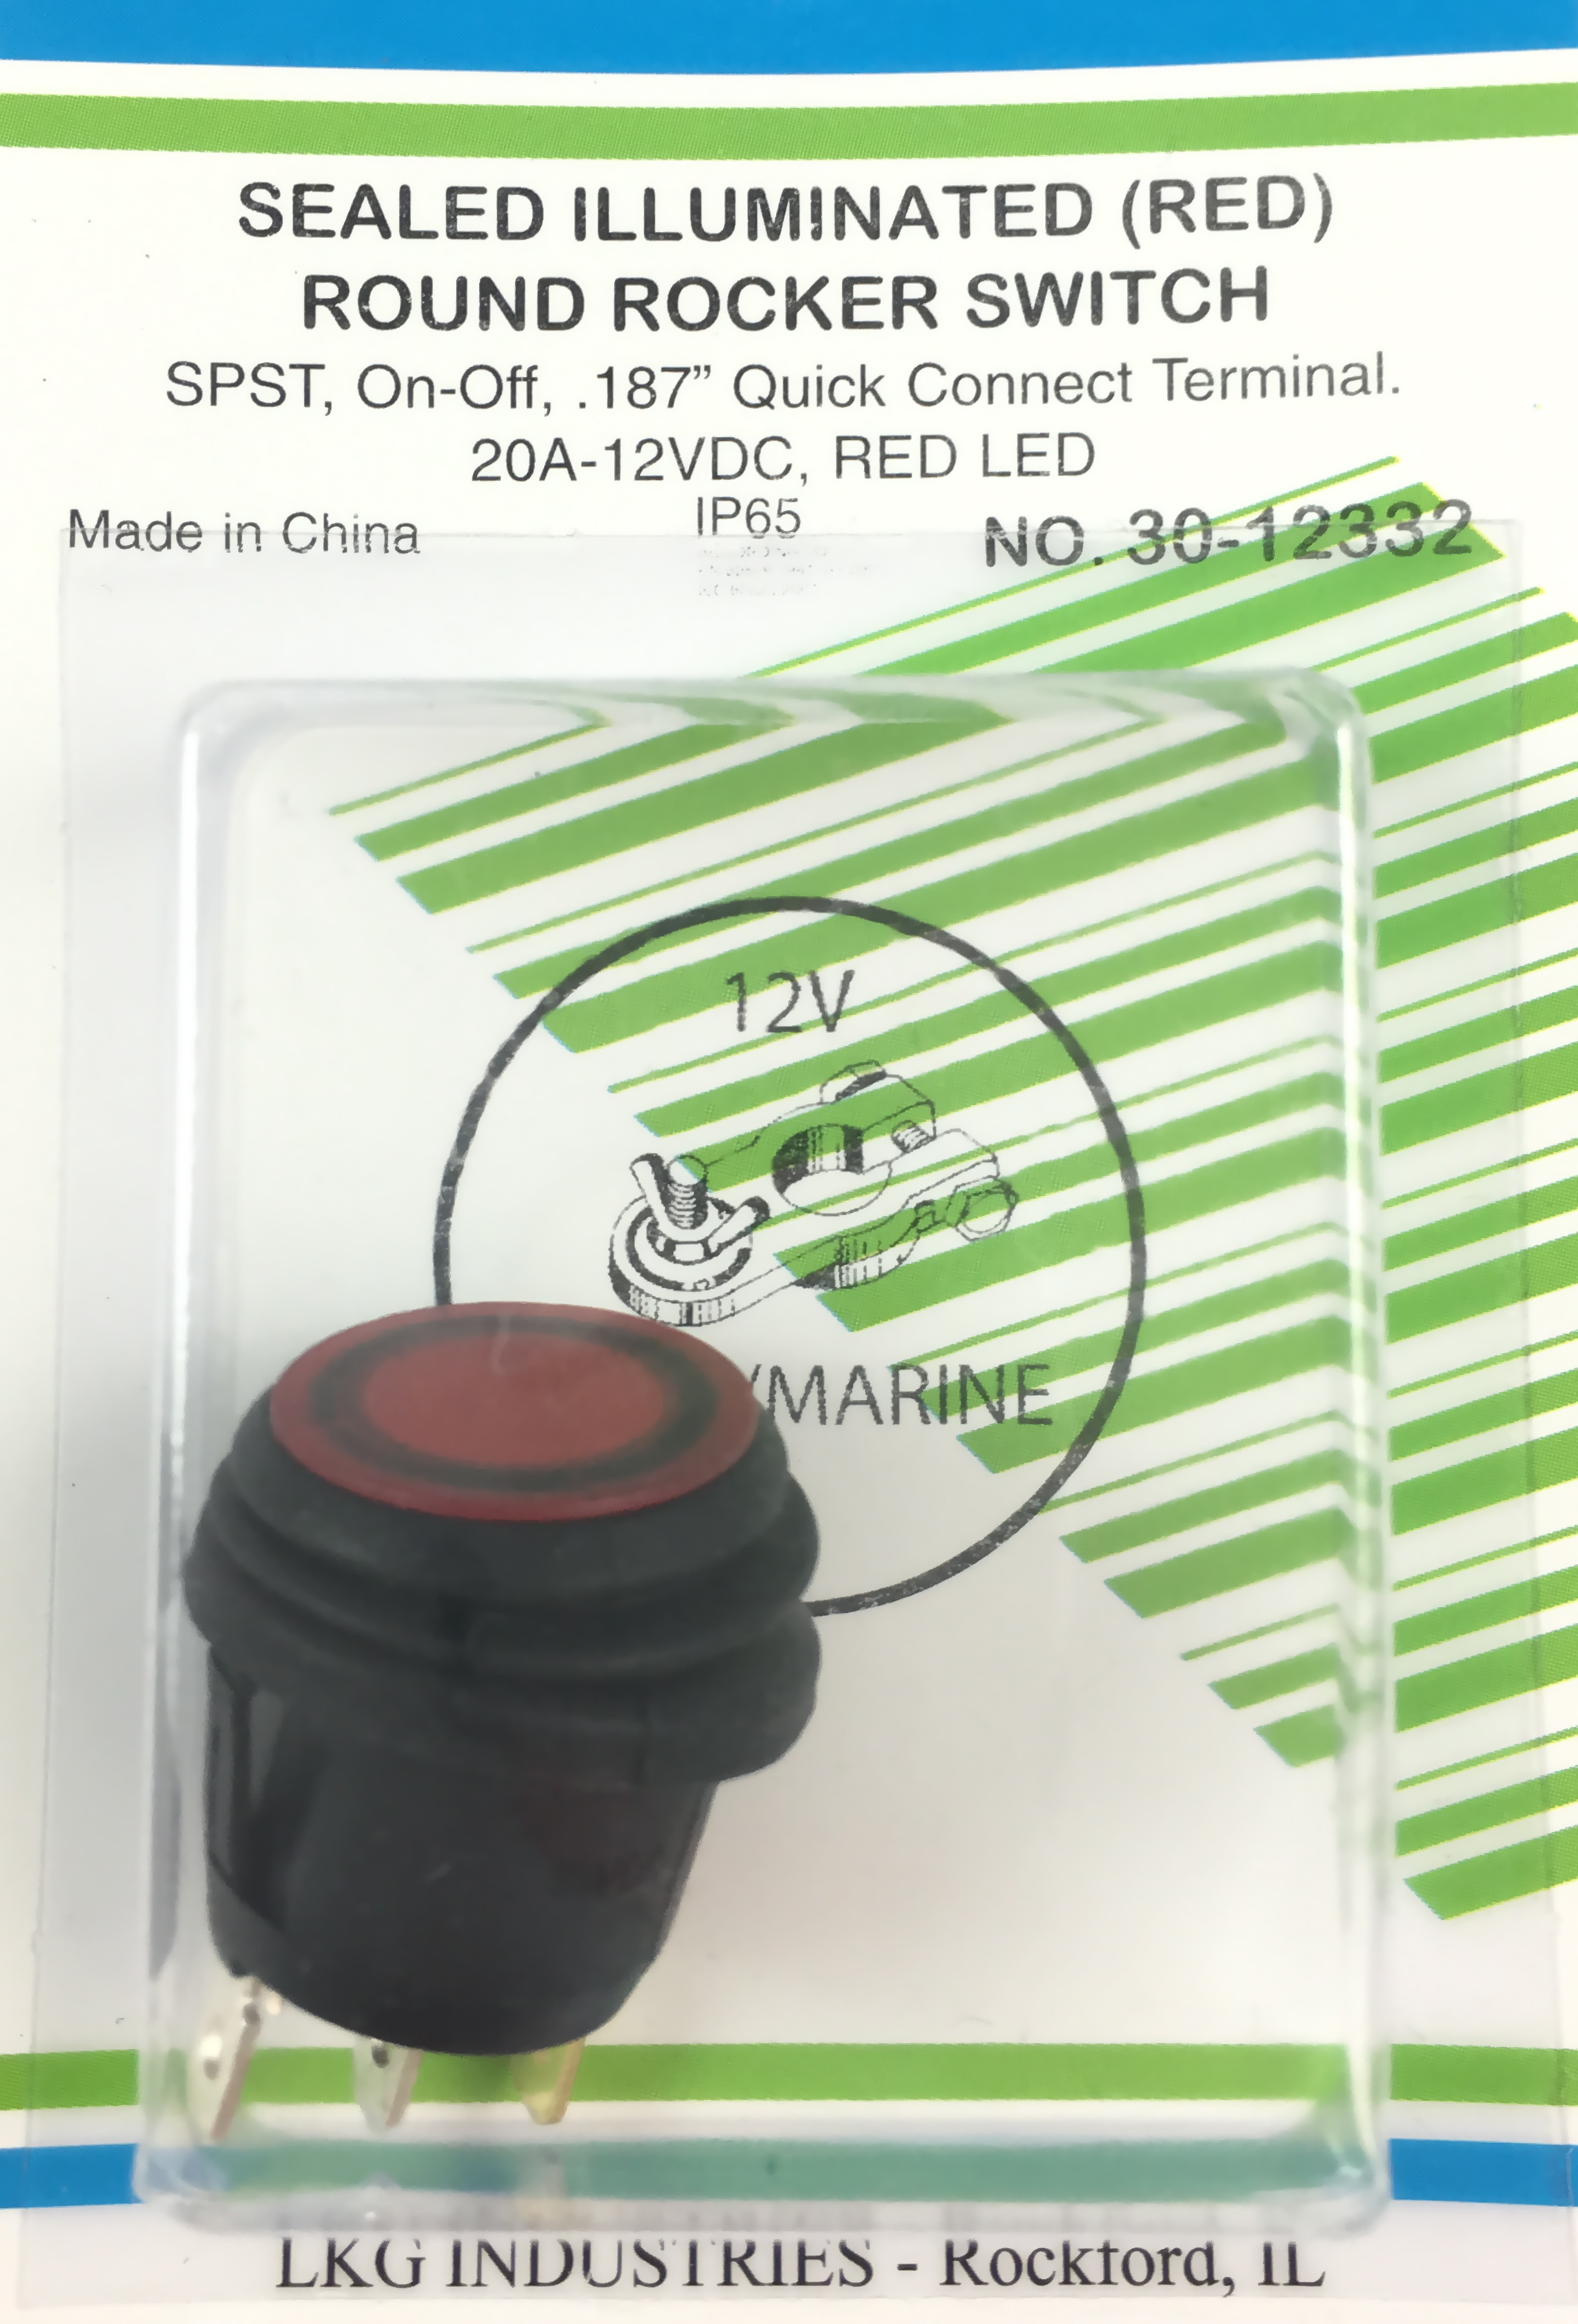 Orvac Electronics Round Rocker 12v Lighted Switch Spst All Corp 12vdc Red Illuminated Splash Proof Snap In On Off